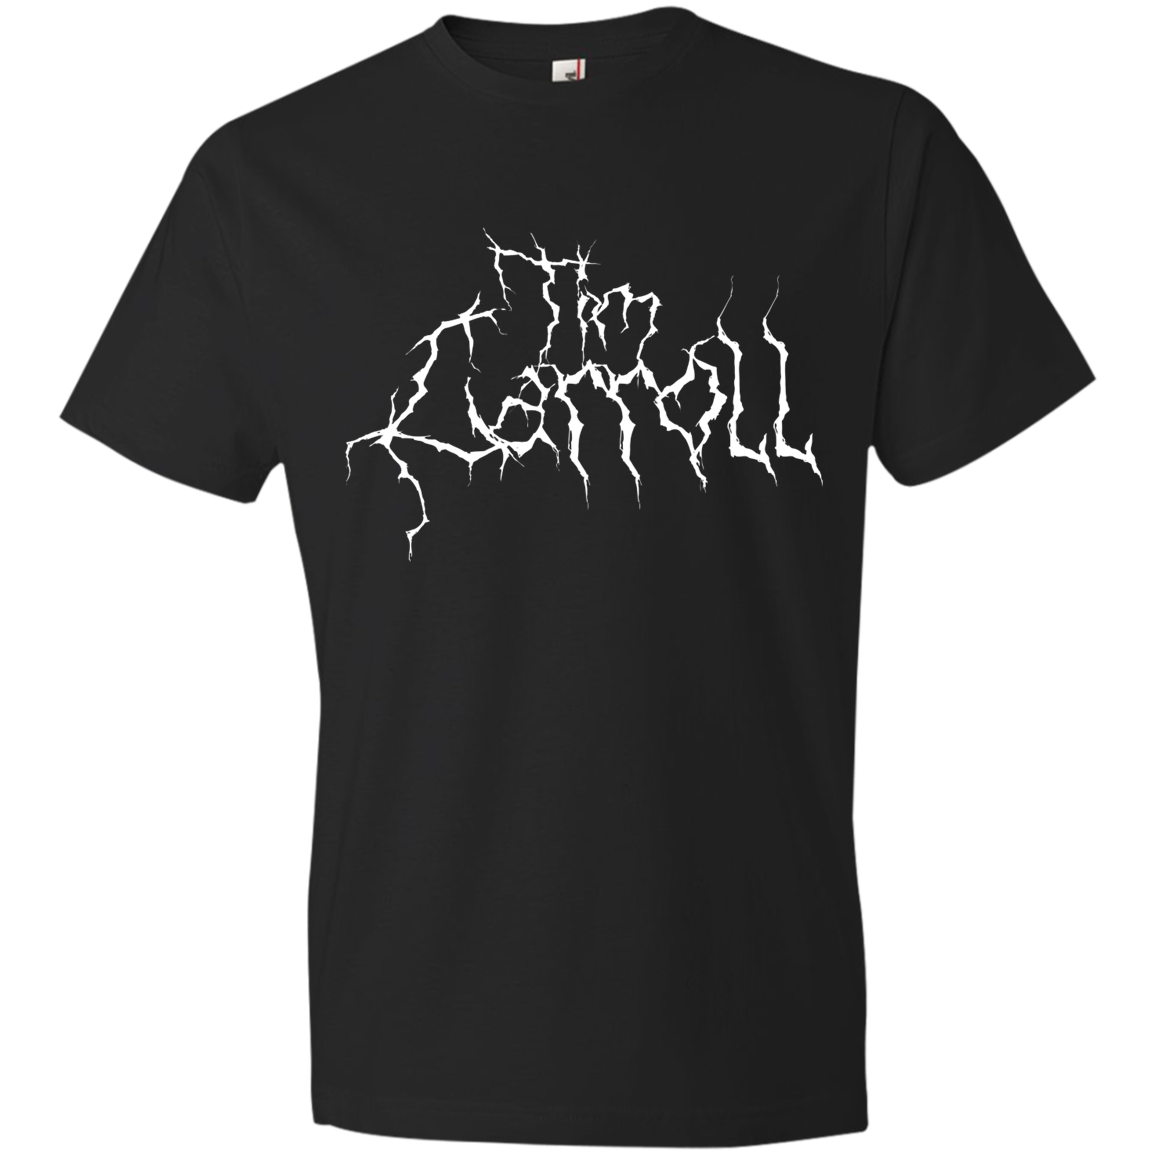 Personal Metal TC Lightweight T-Shirt 4.5 oz